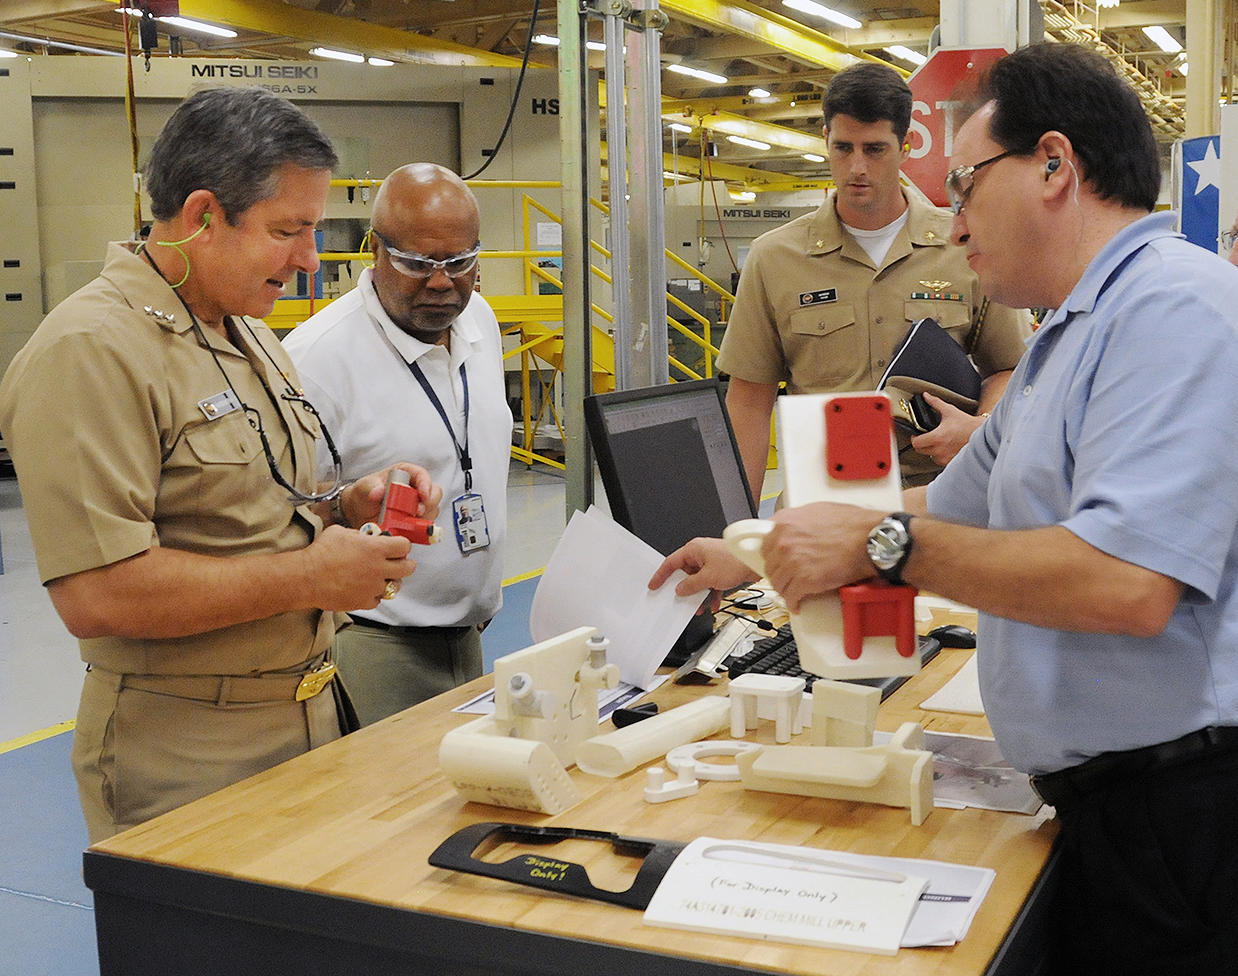 Randall Meeker, right, a mechanical engineering technician and tool designer at Fleet Readiness Center Southeast (FRCSE), explains how he uses a 3-D computer software program and additive manufacturing to build tools and aircraft prototypes to Vice Adm. David Dunaway, commander of Naval Air Systems Command on Aug. 12, 2015. US Navy Photo